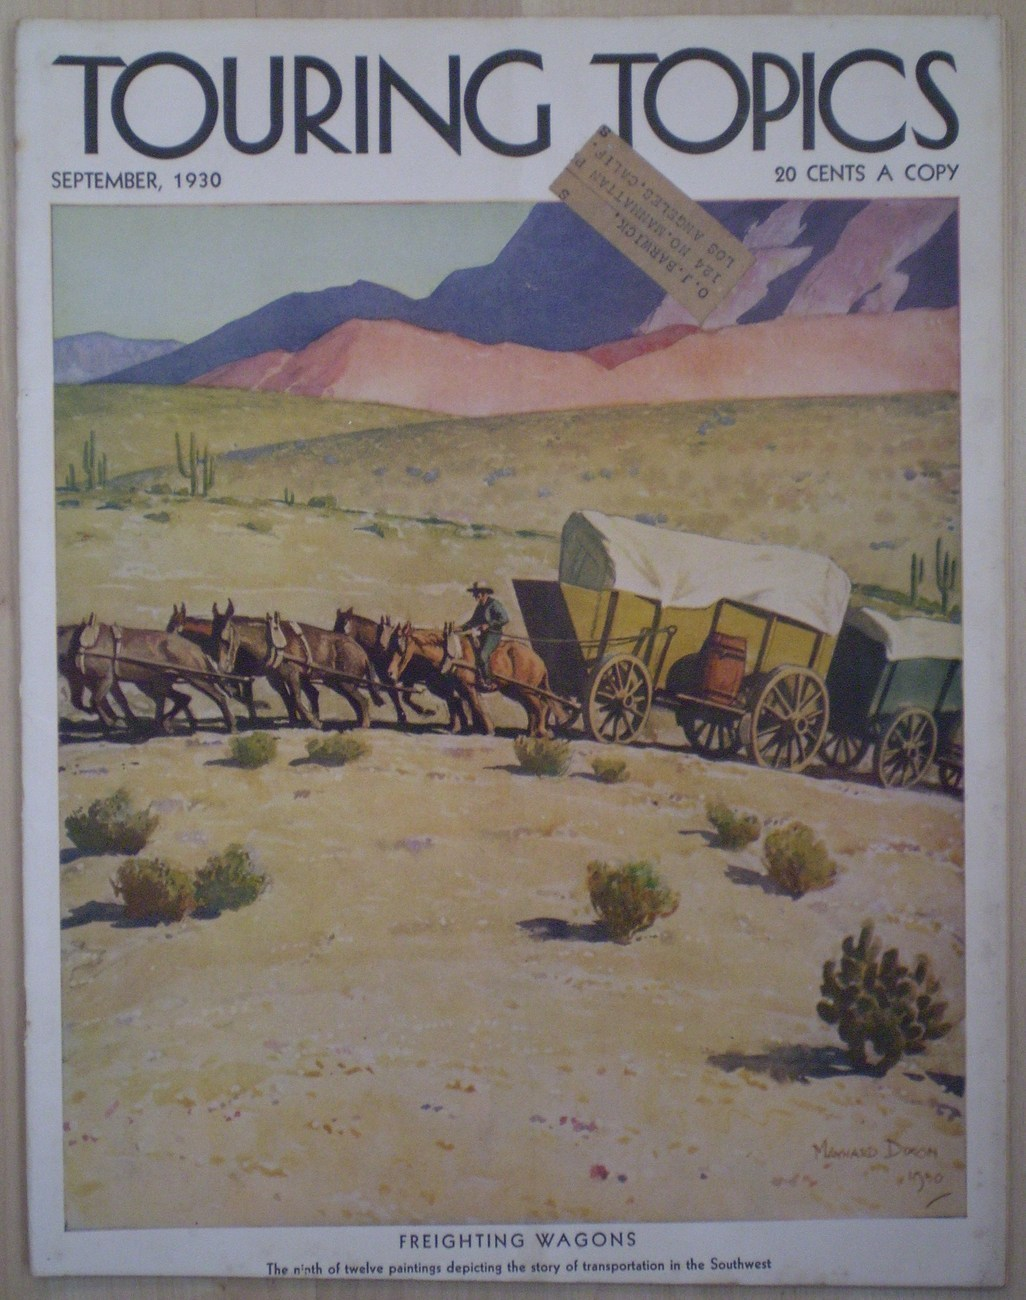 Touring Topics September 1930 Maynard Dixon Vintage magazine